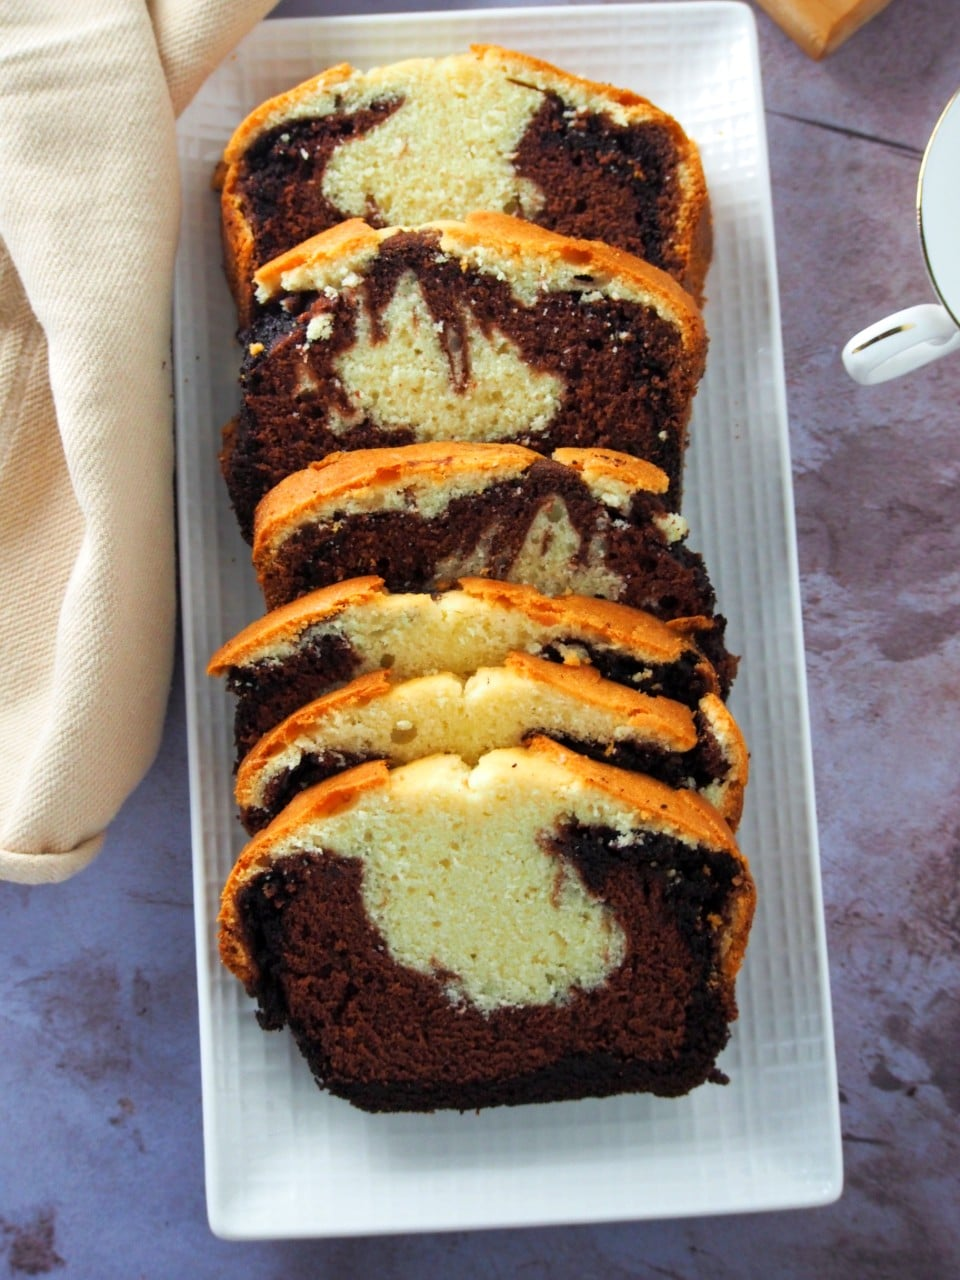 Chocolate ombre pound cake slices arranged on a serving dish.